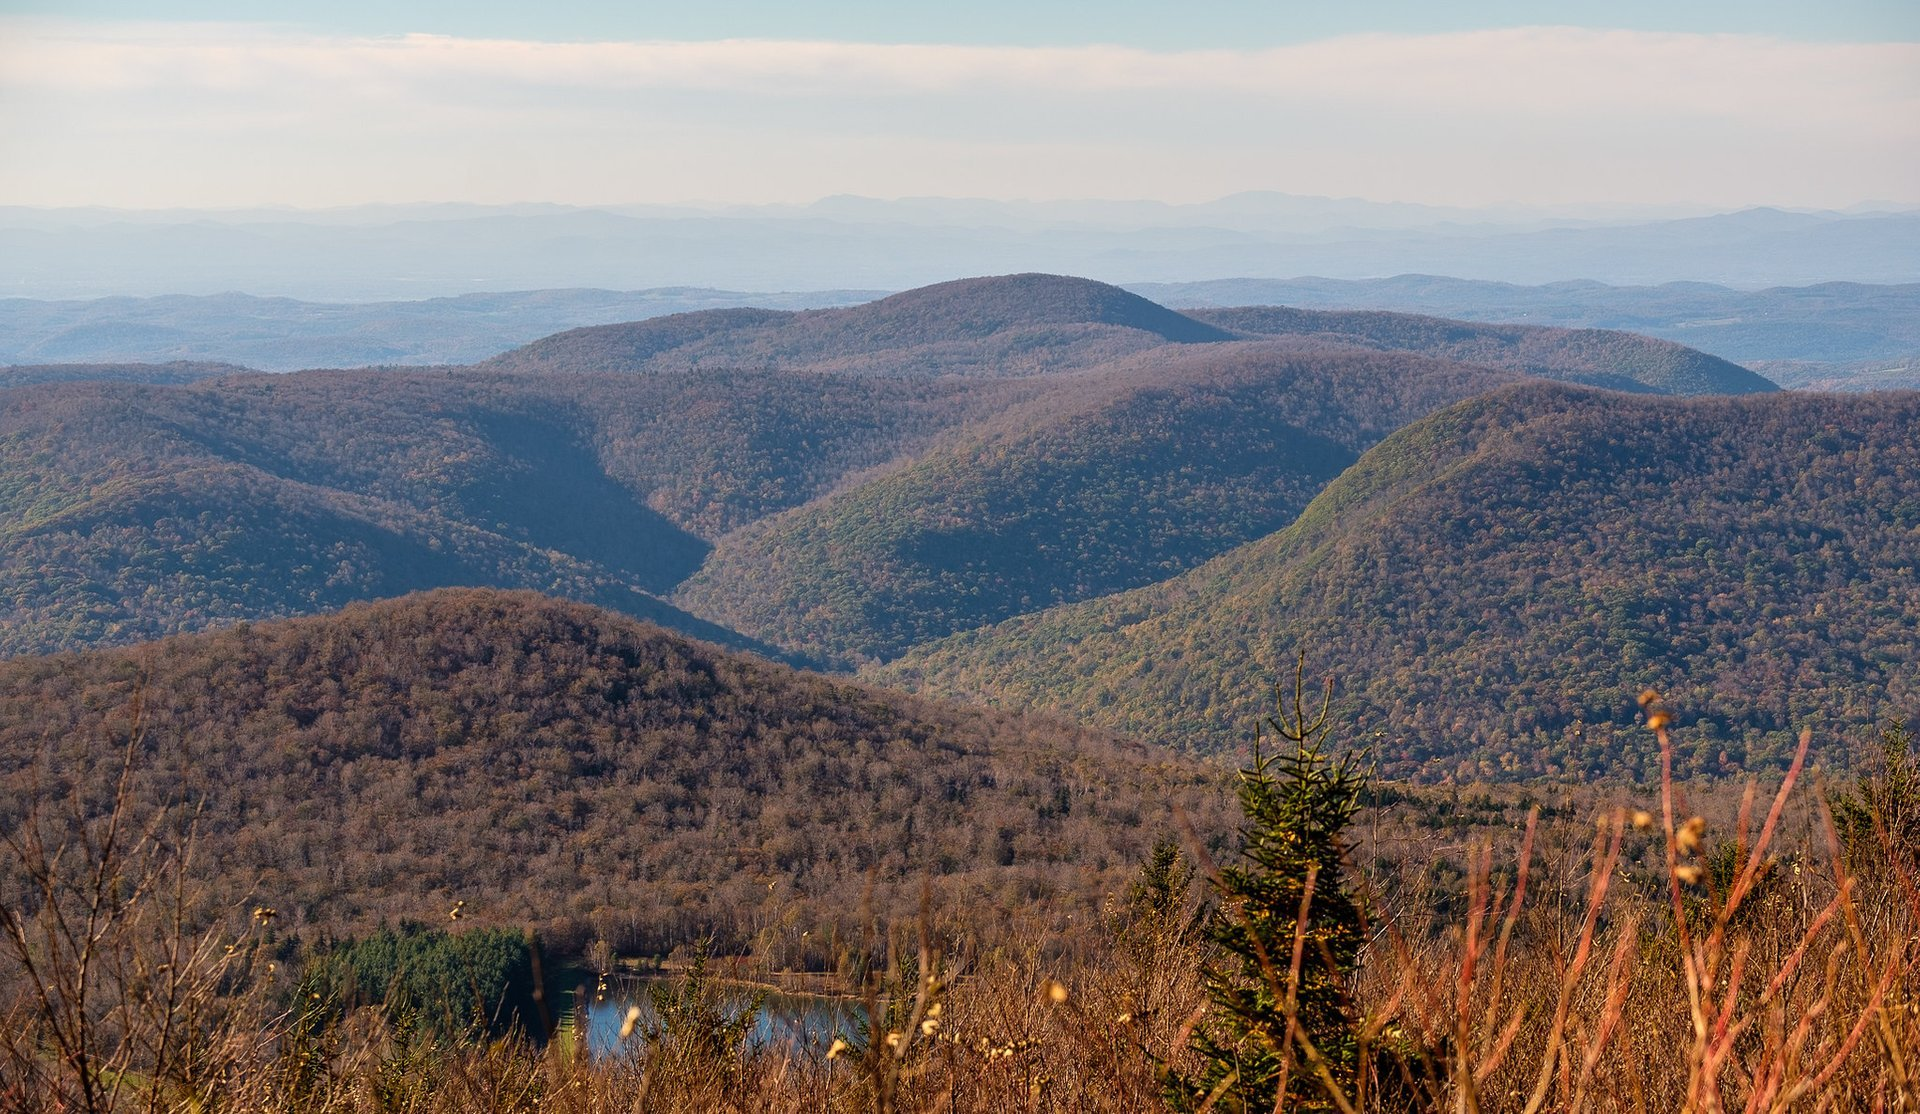 The view from the top of Equinox Mountain near Manchester, Vermont 2020